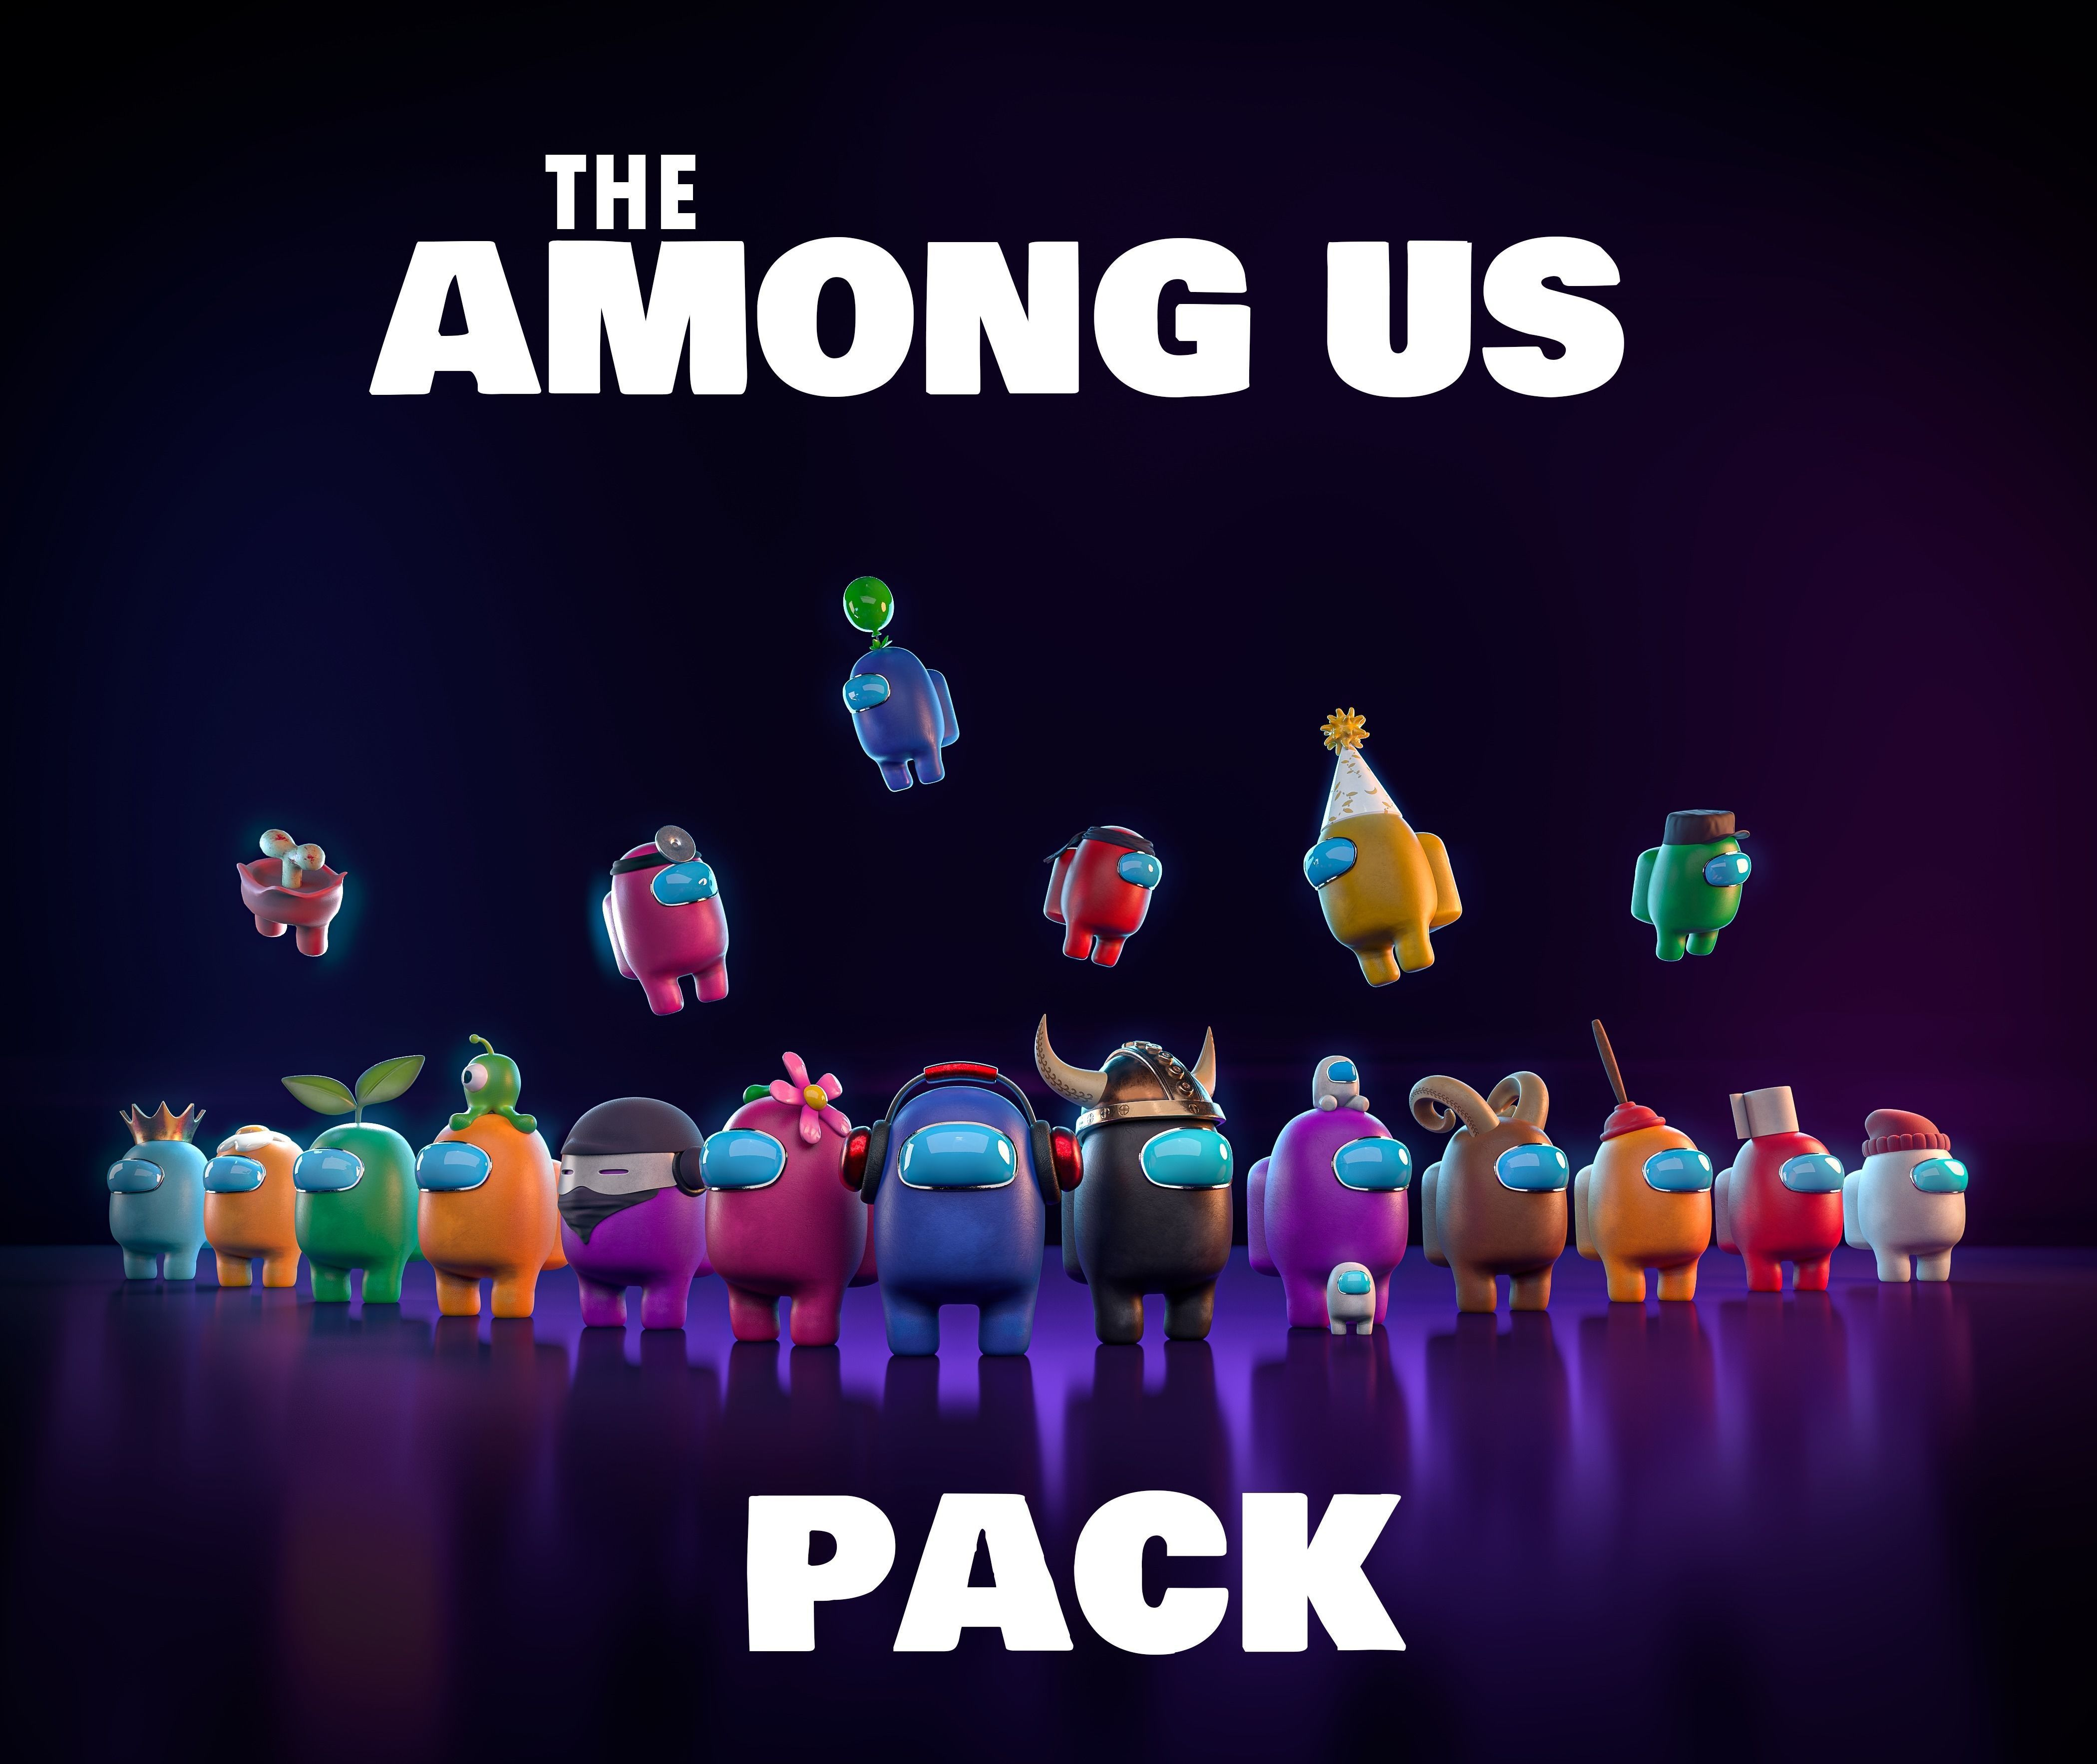 Among Us 3D pack -PBR